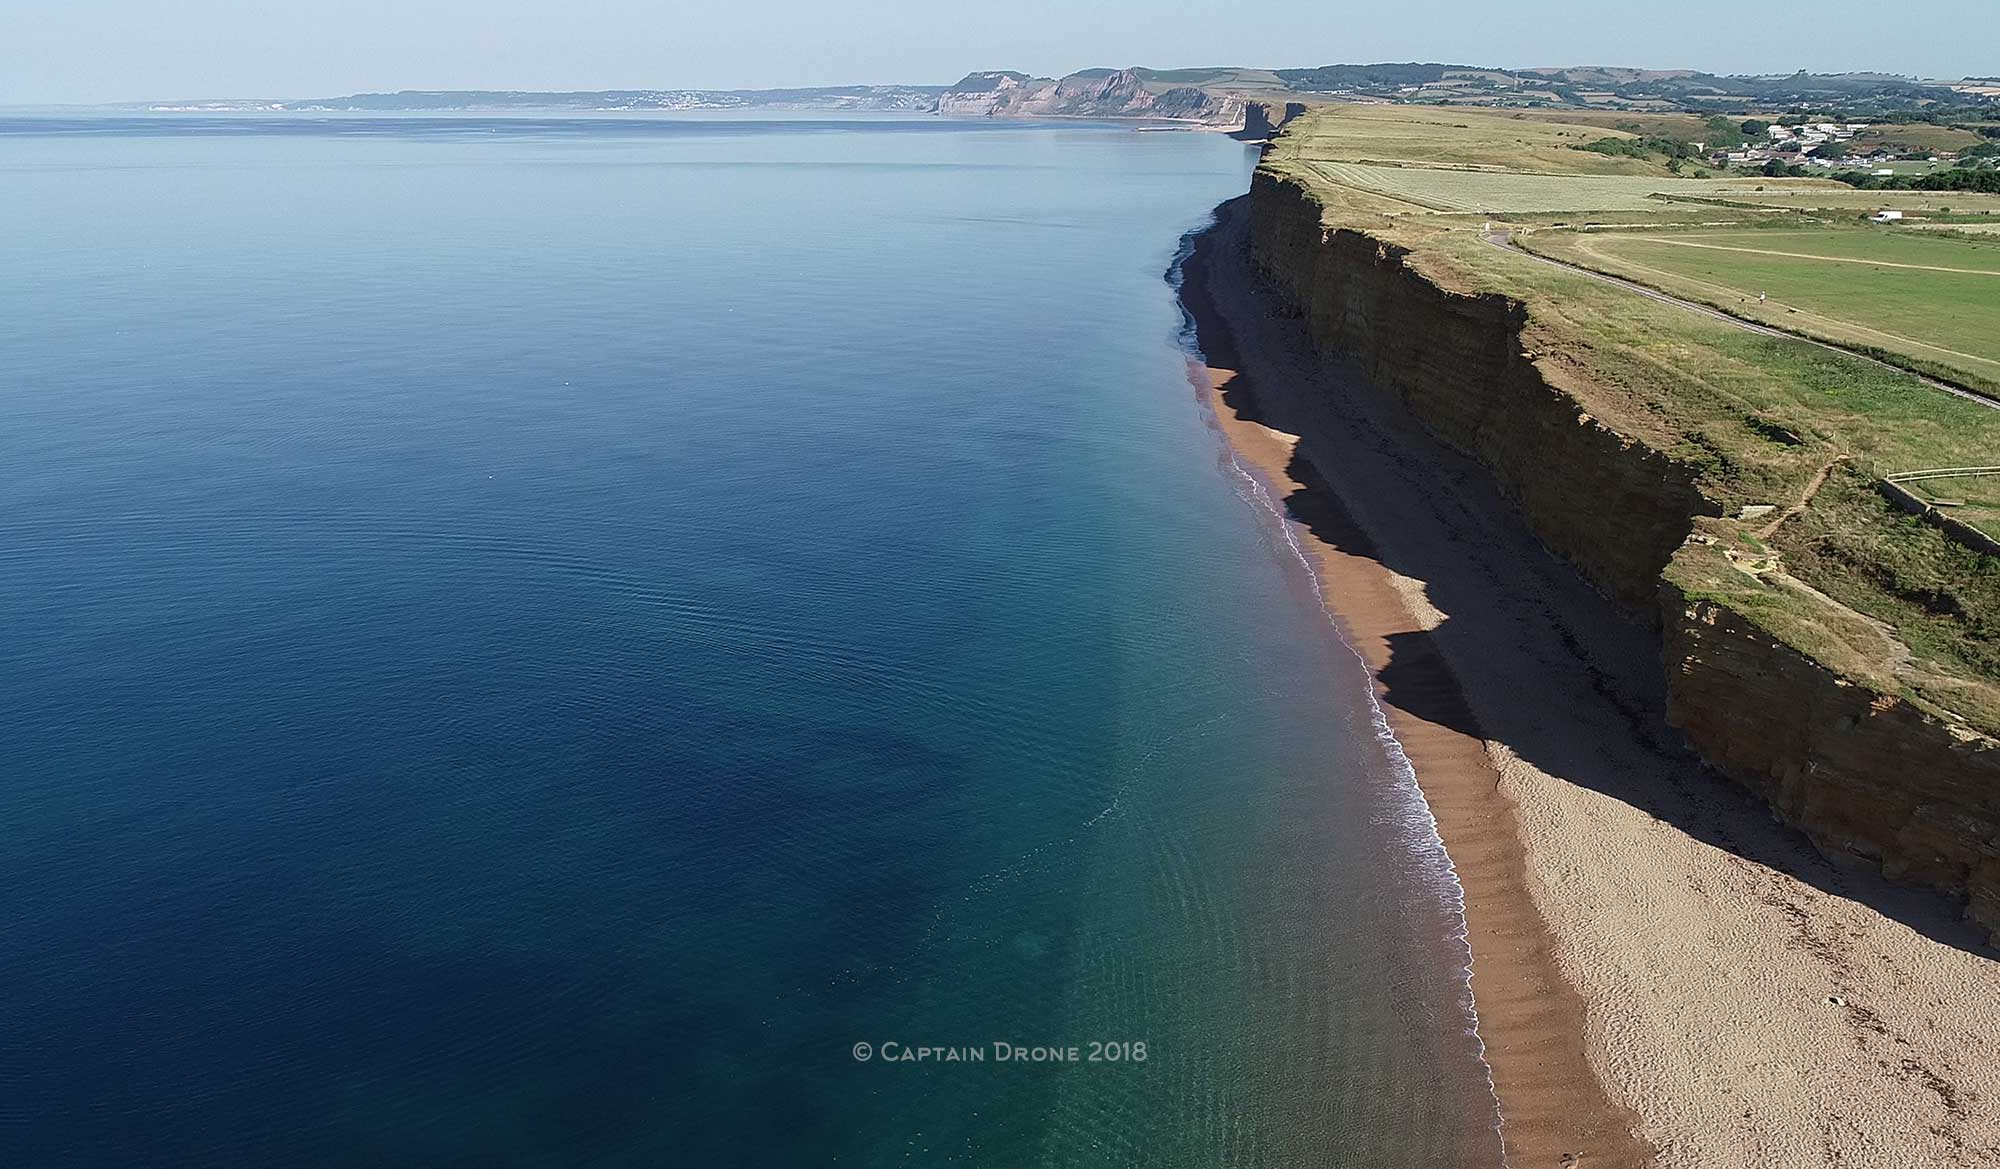 West Dorset Coastal aerial photography by Captain Drone